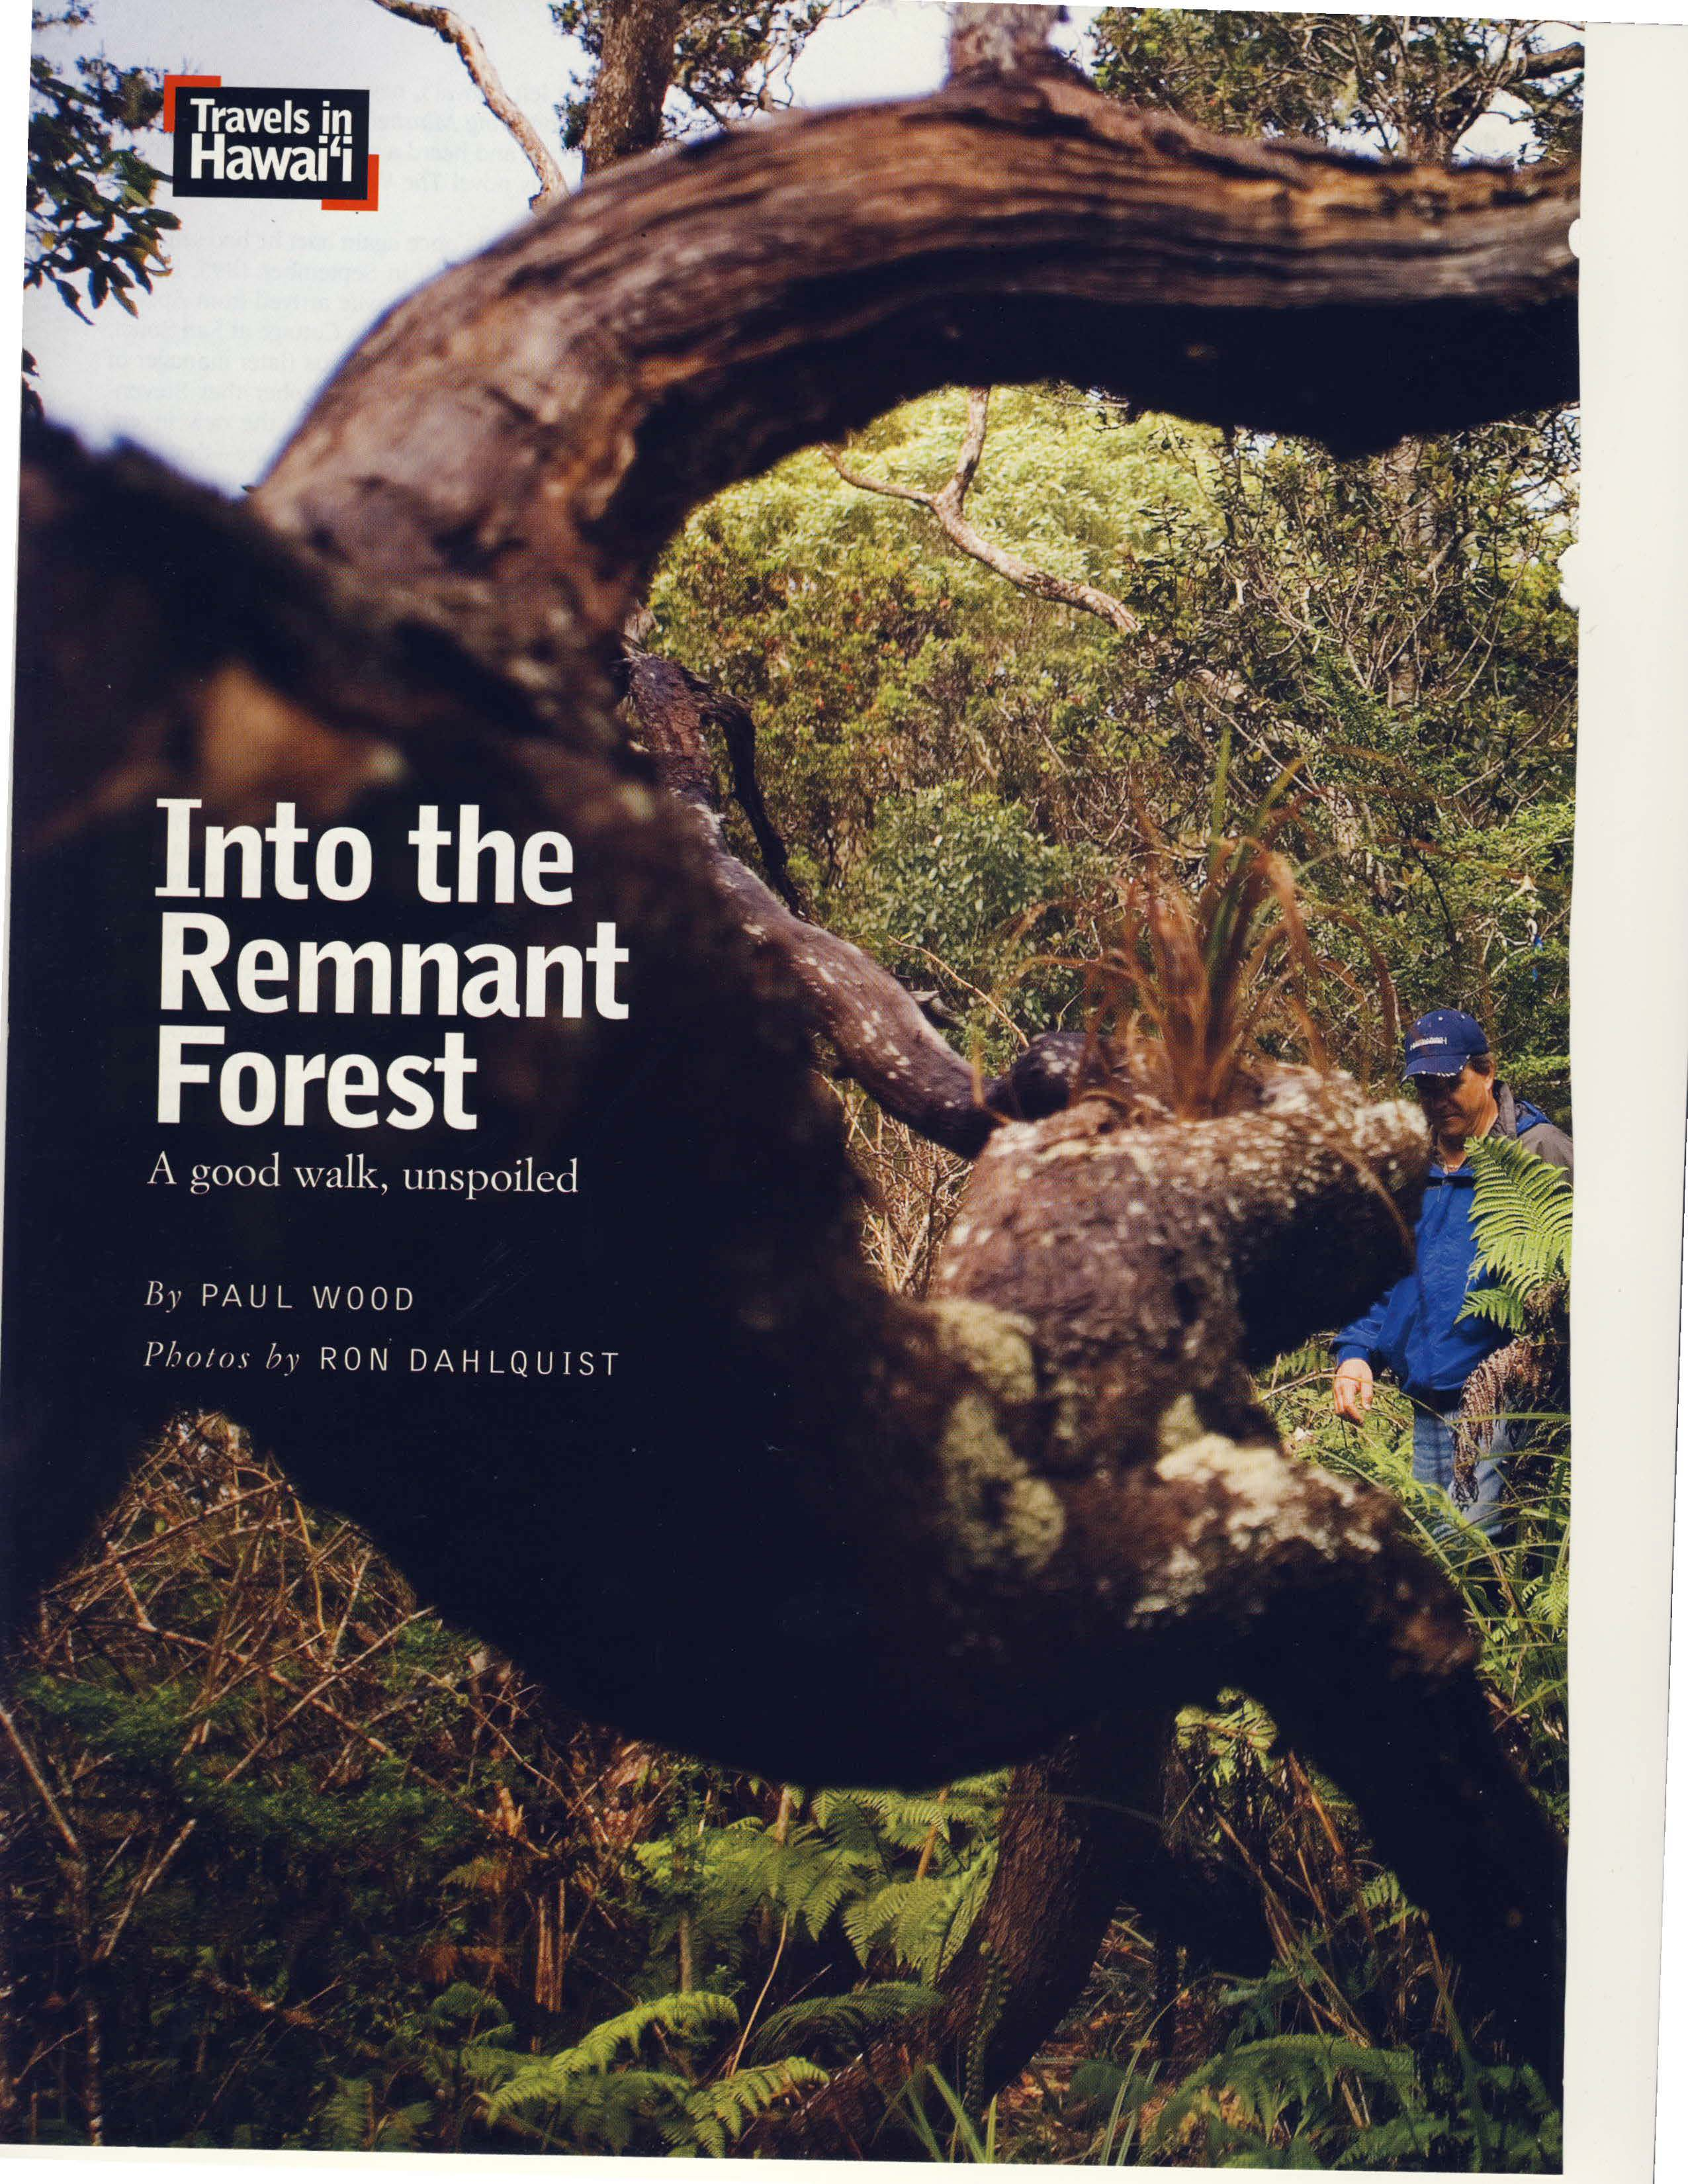 Forest Primeval Hawaii_Page_01.jpg